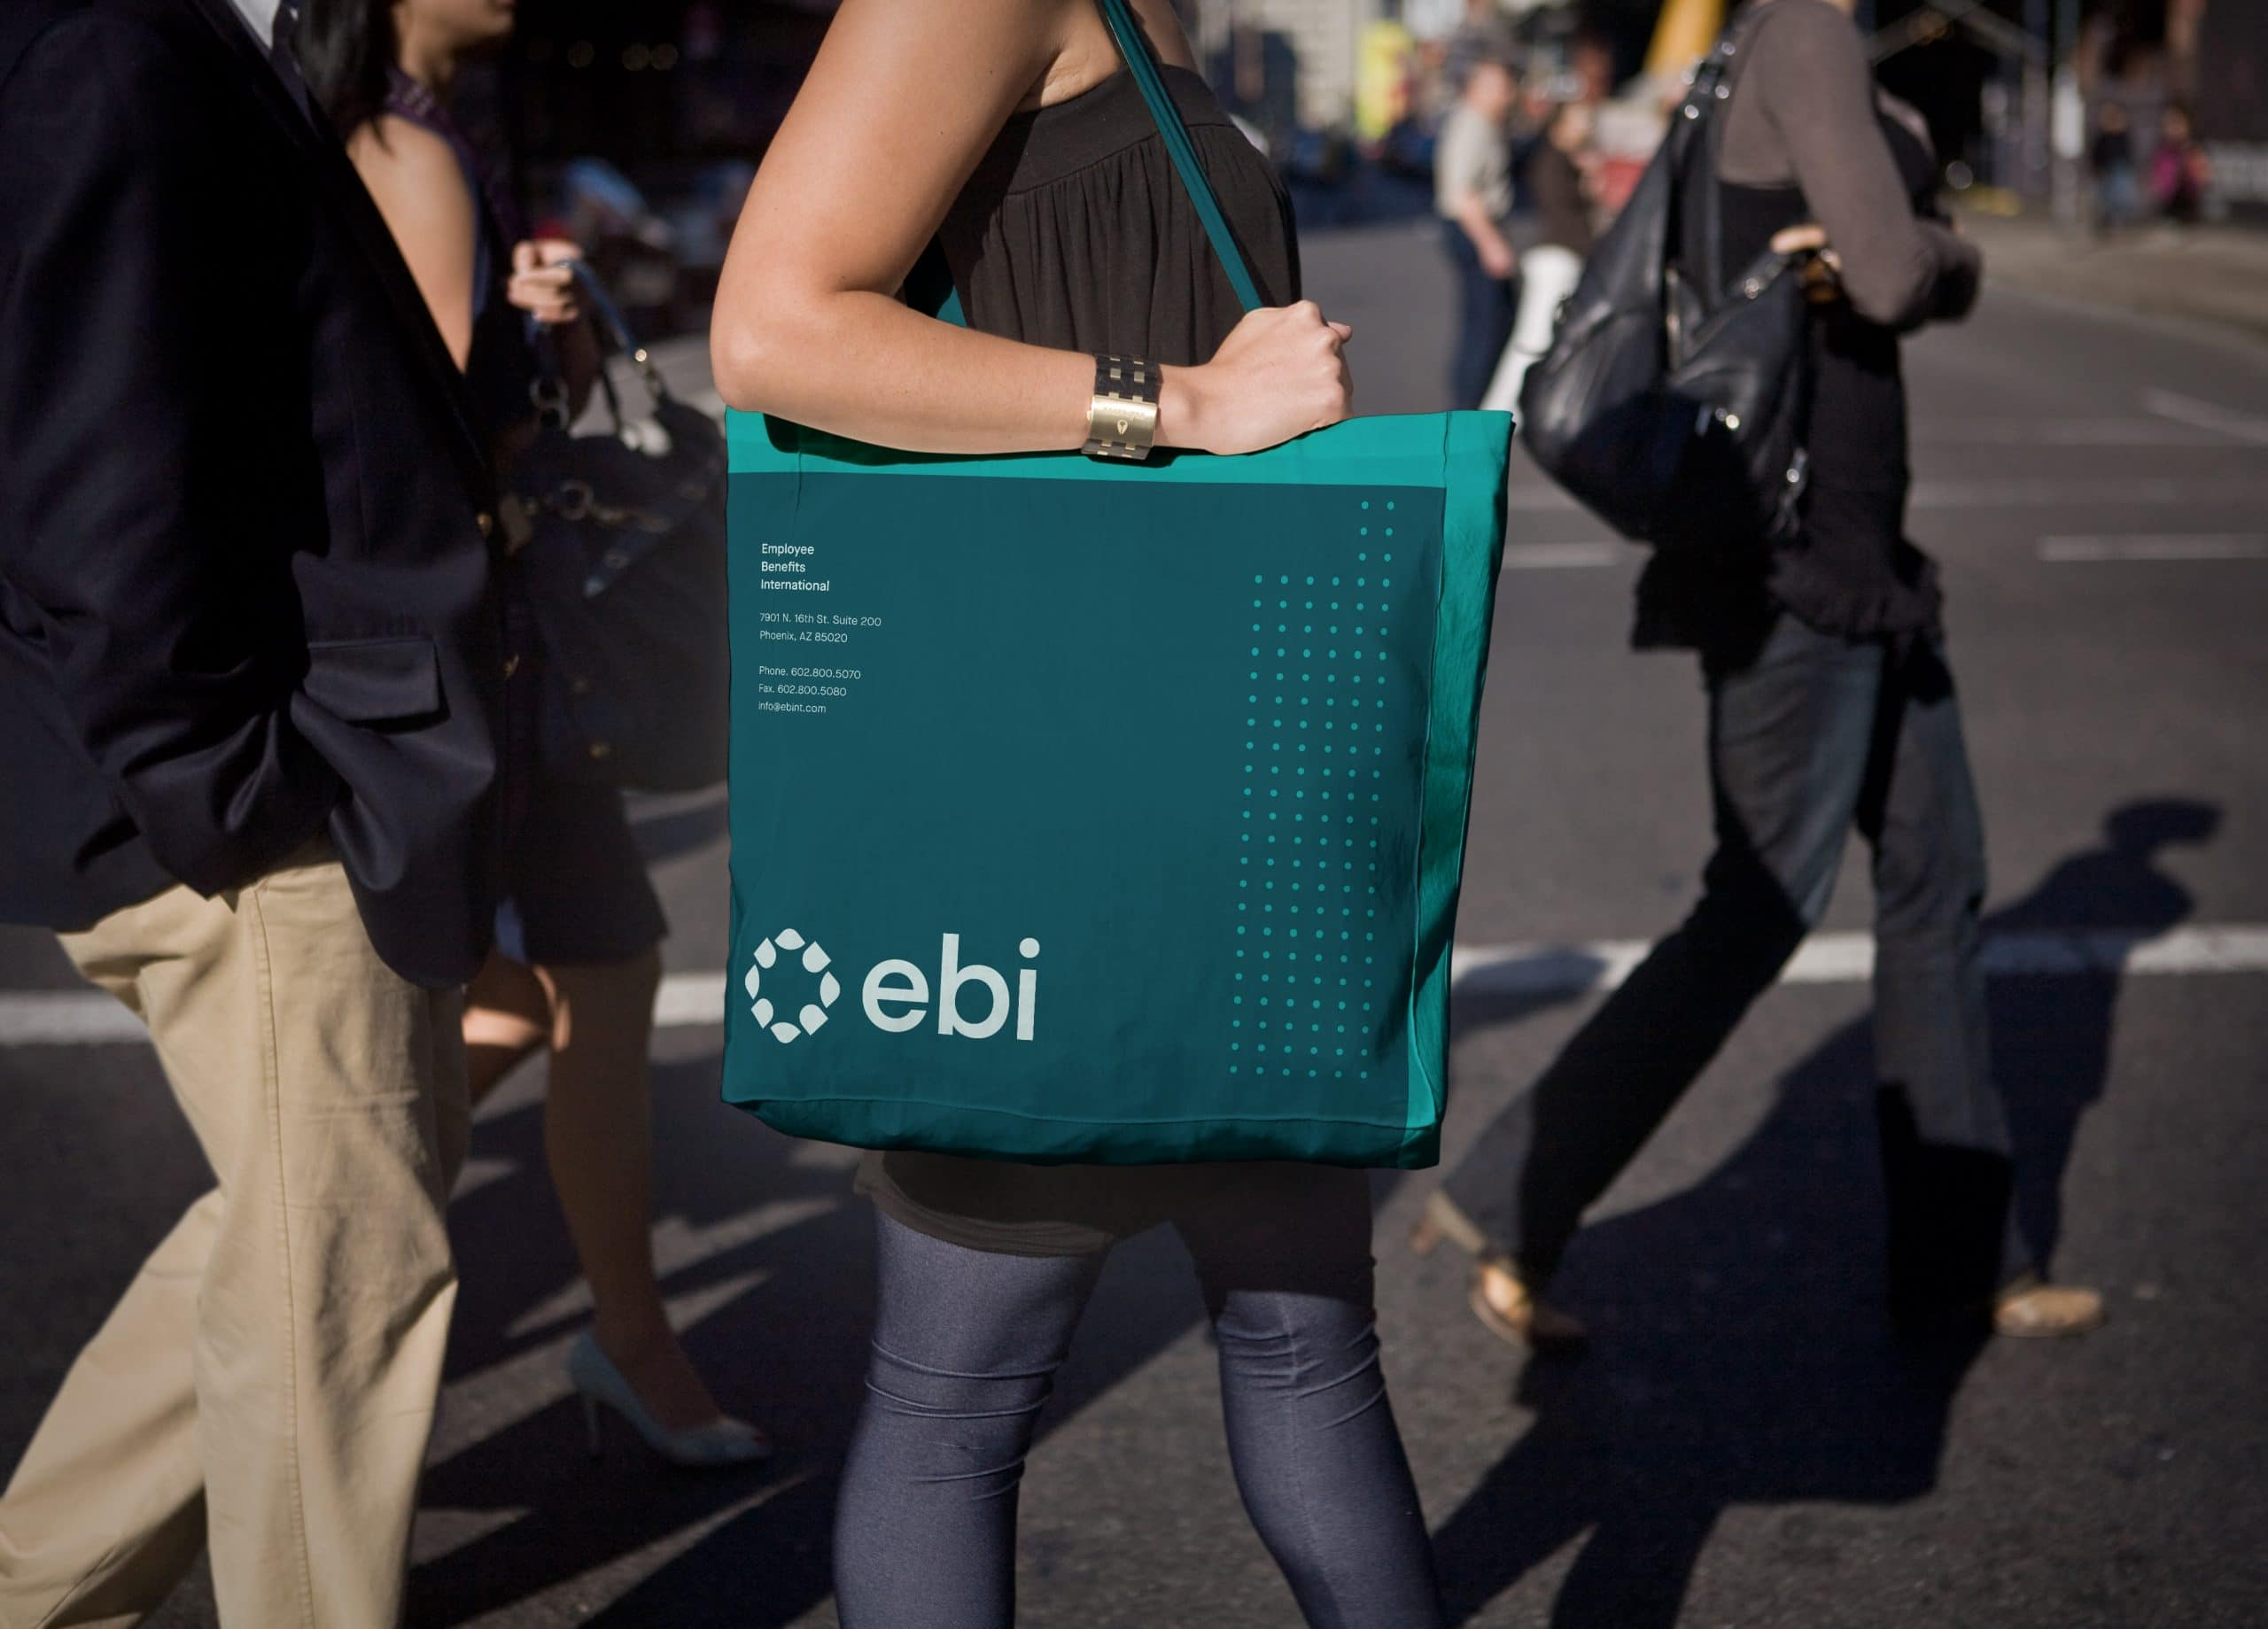 EBI-logo-design-on-tote